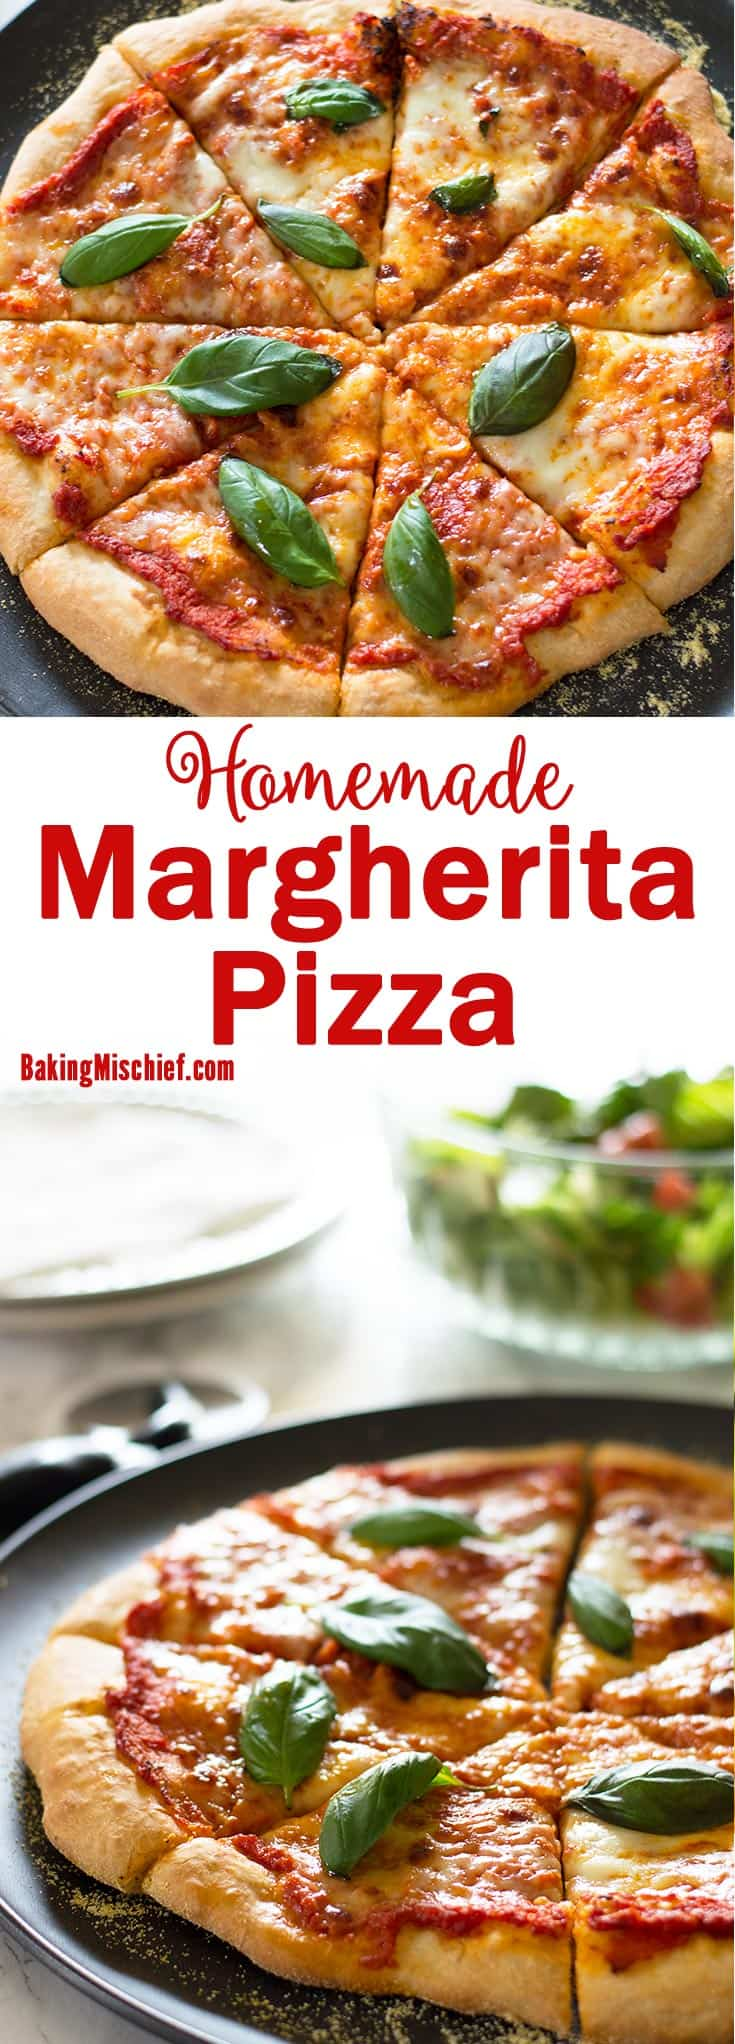 Simple but impressive homemade margherita pizza with dough and sauce from scratch! Recipe includes nutritional information and freezer and make-ahead instructions. From BakingMischief.com